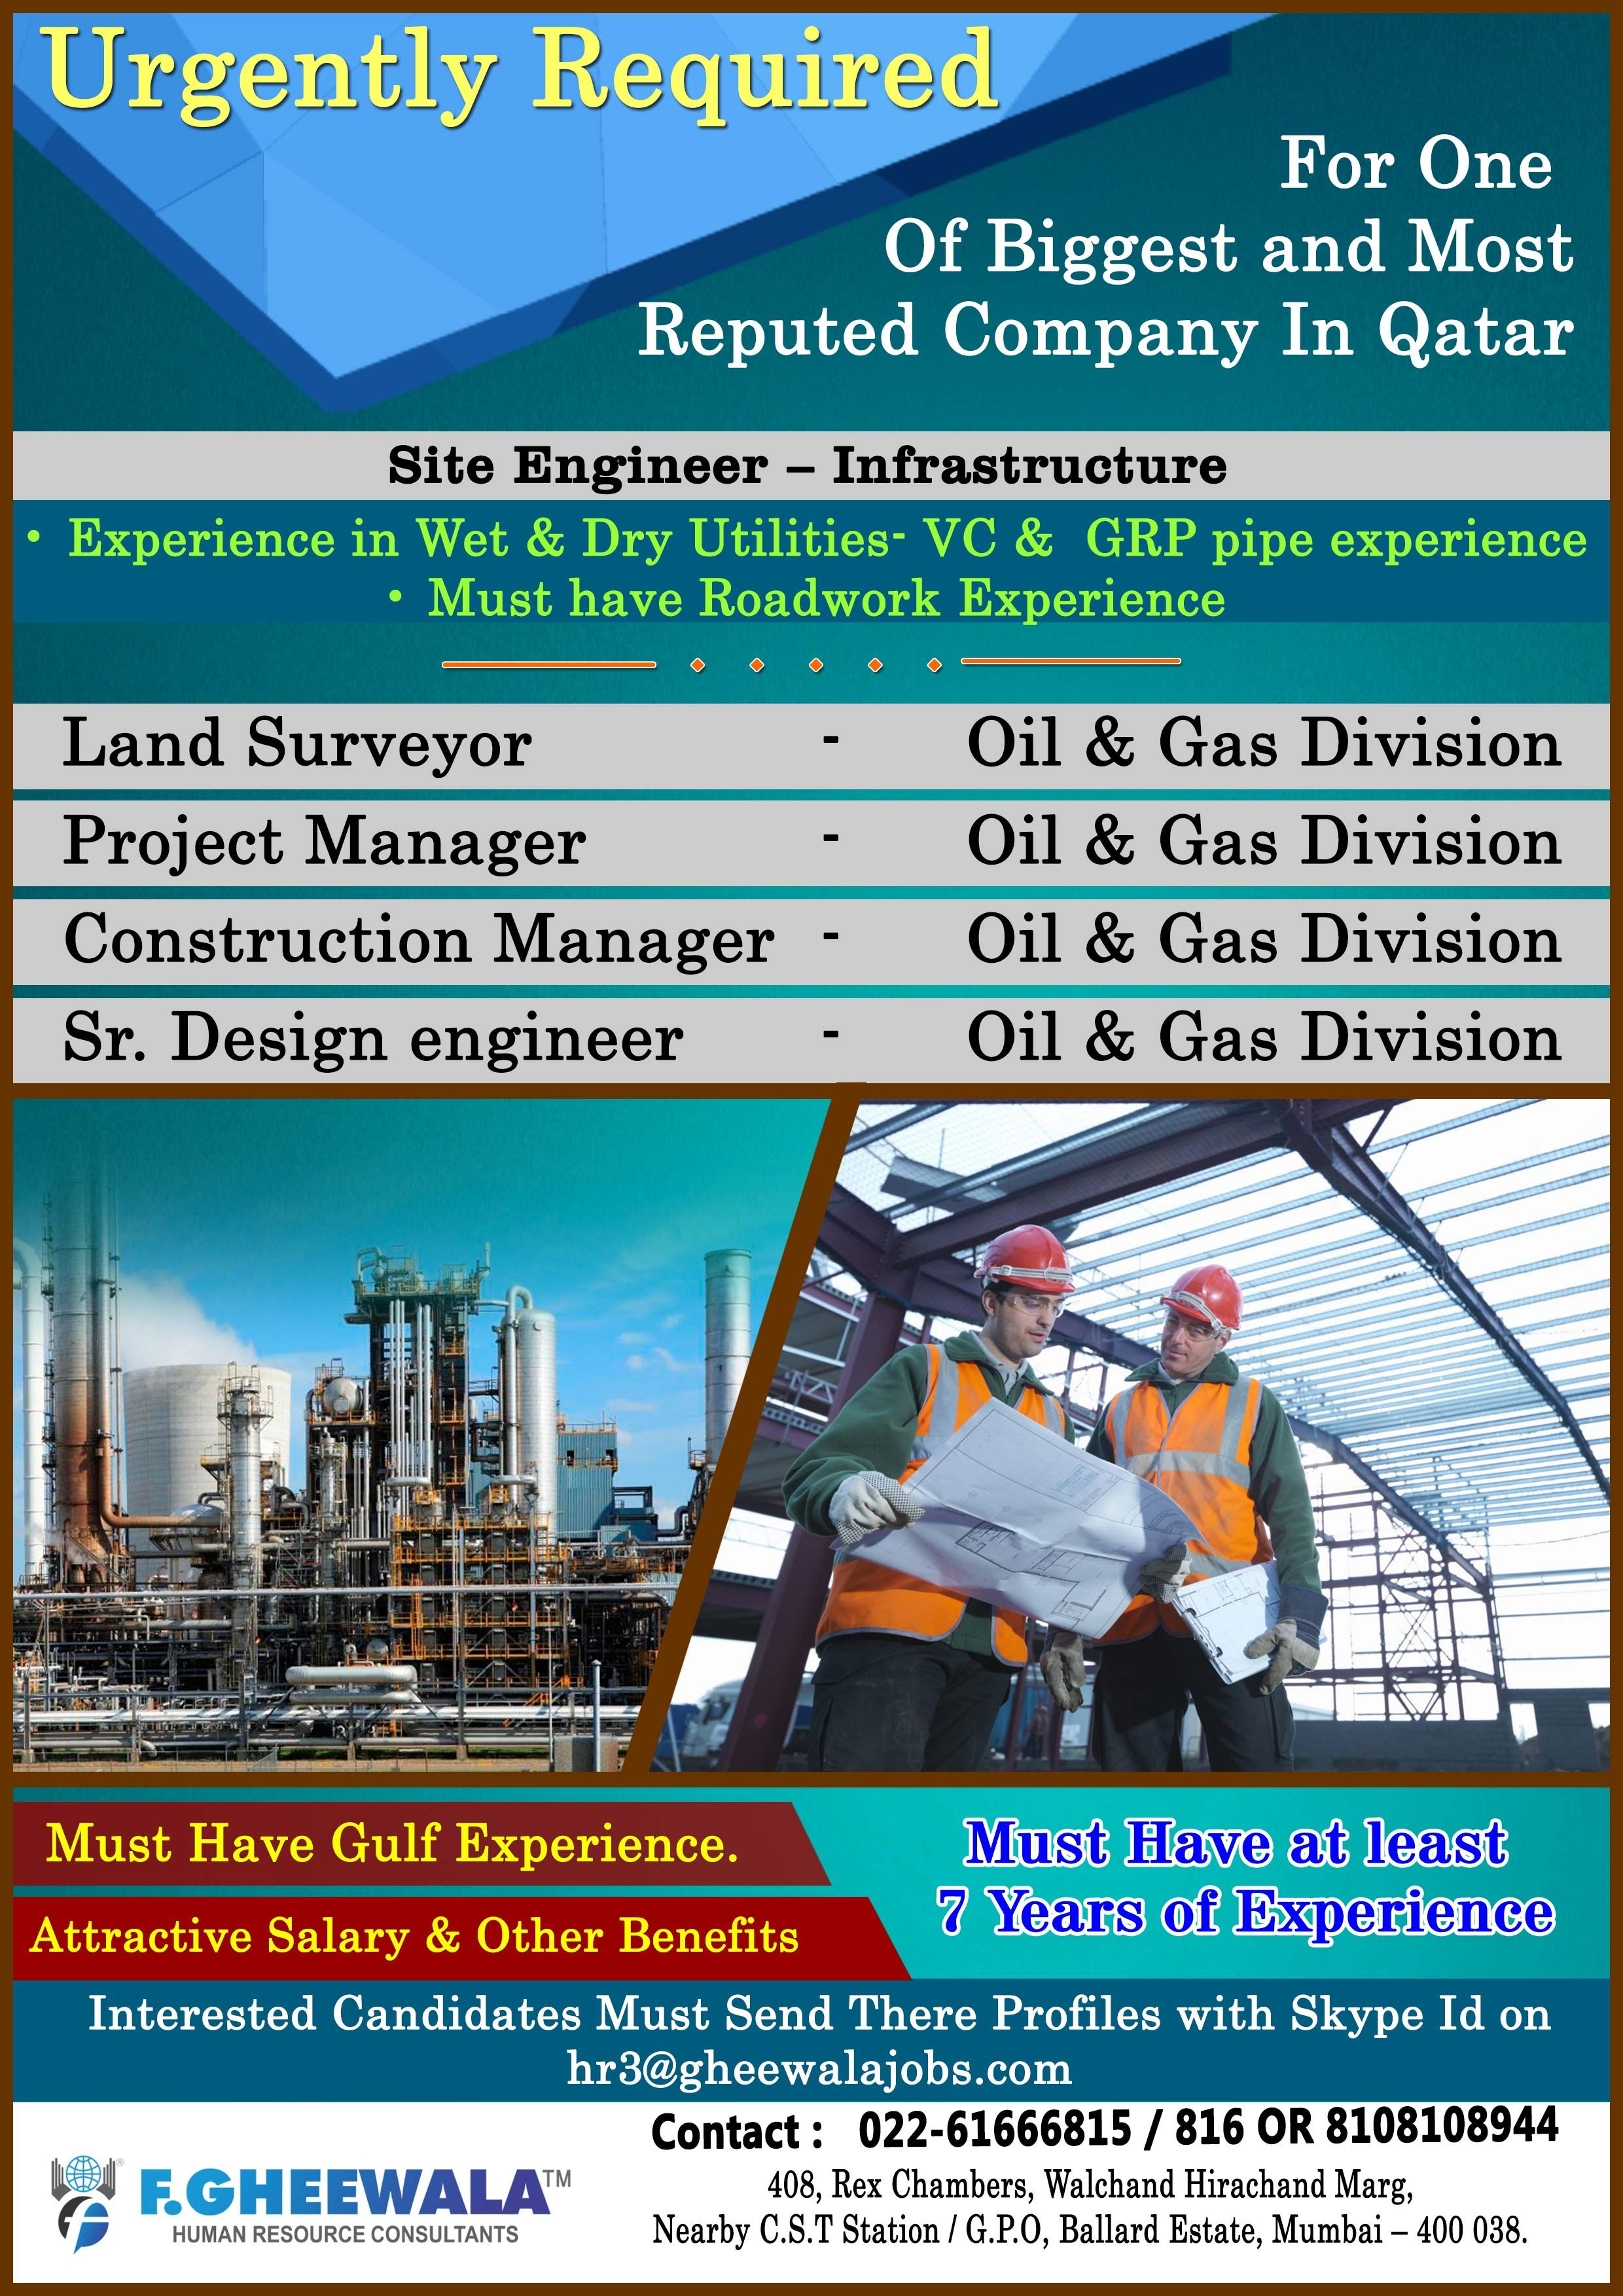 Urgently Required for one of the Biggest and Most Reputed Company in